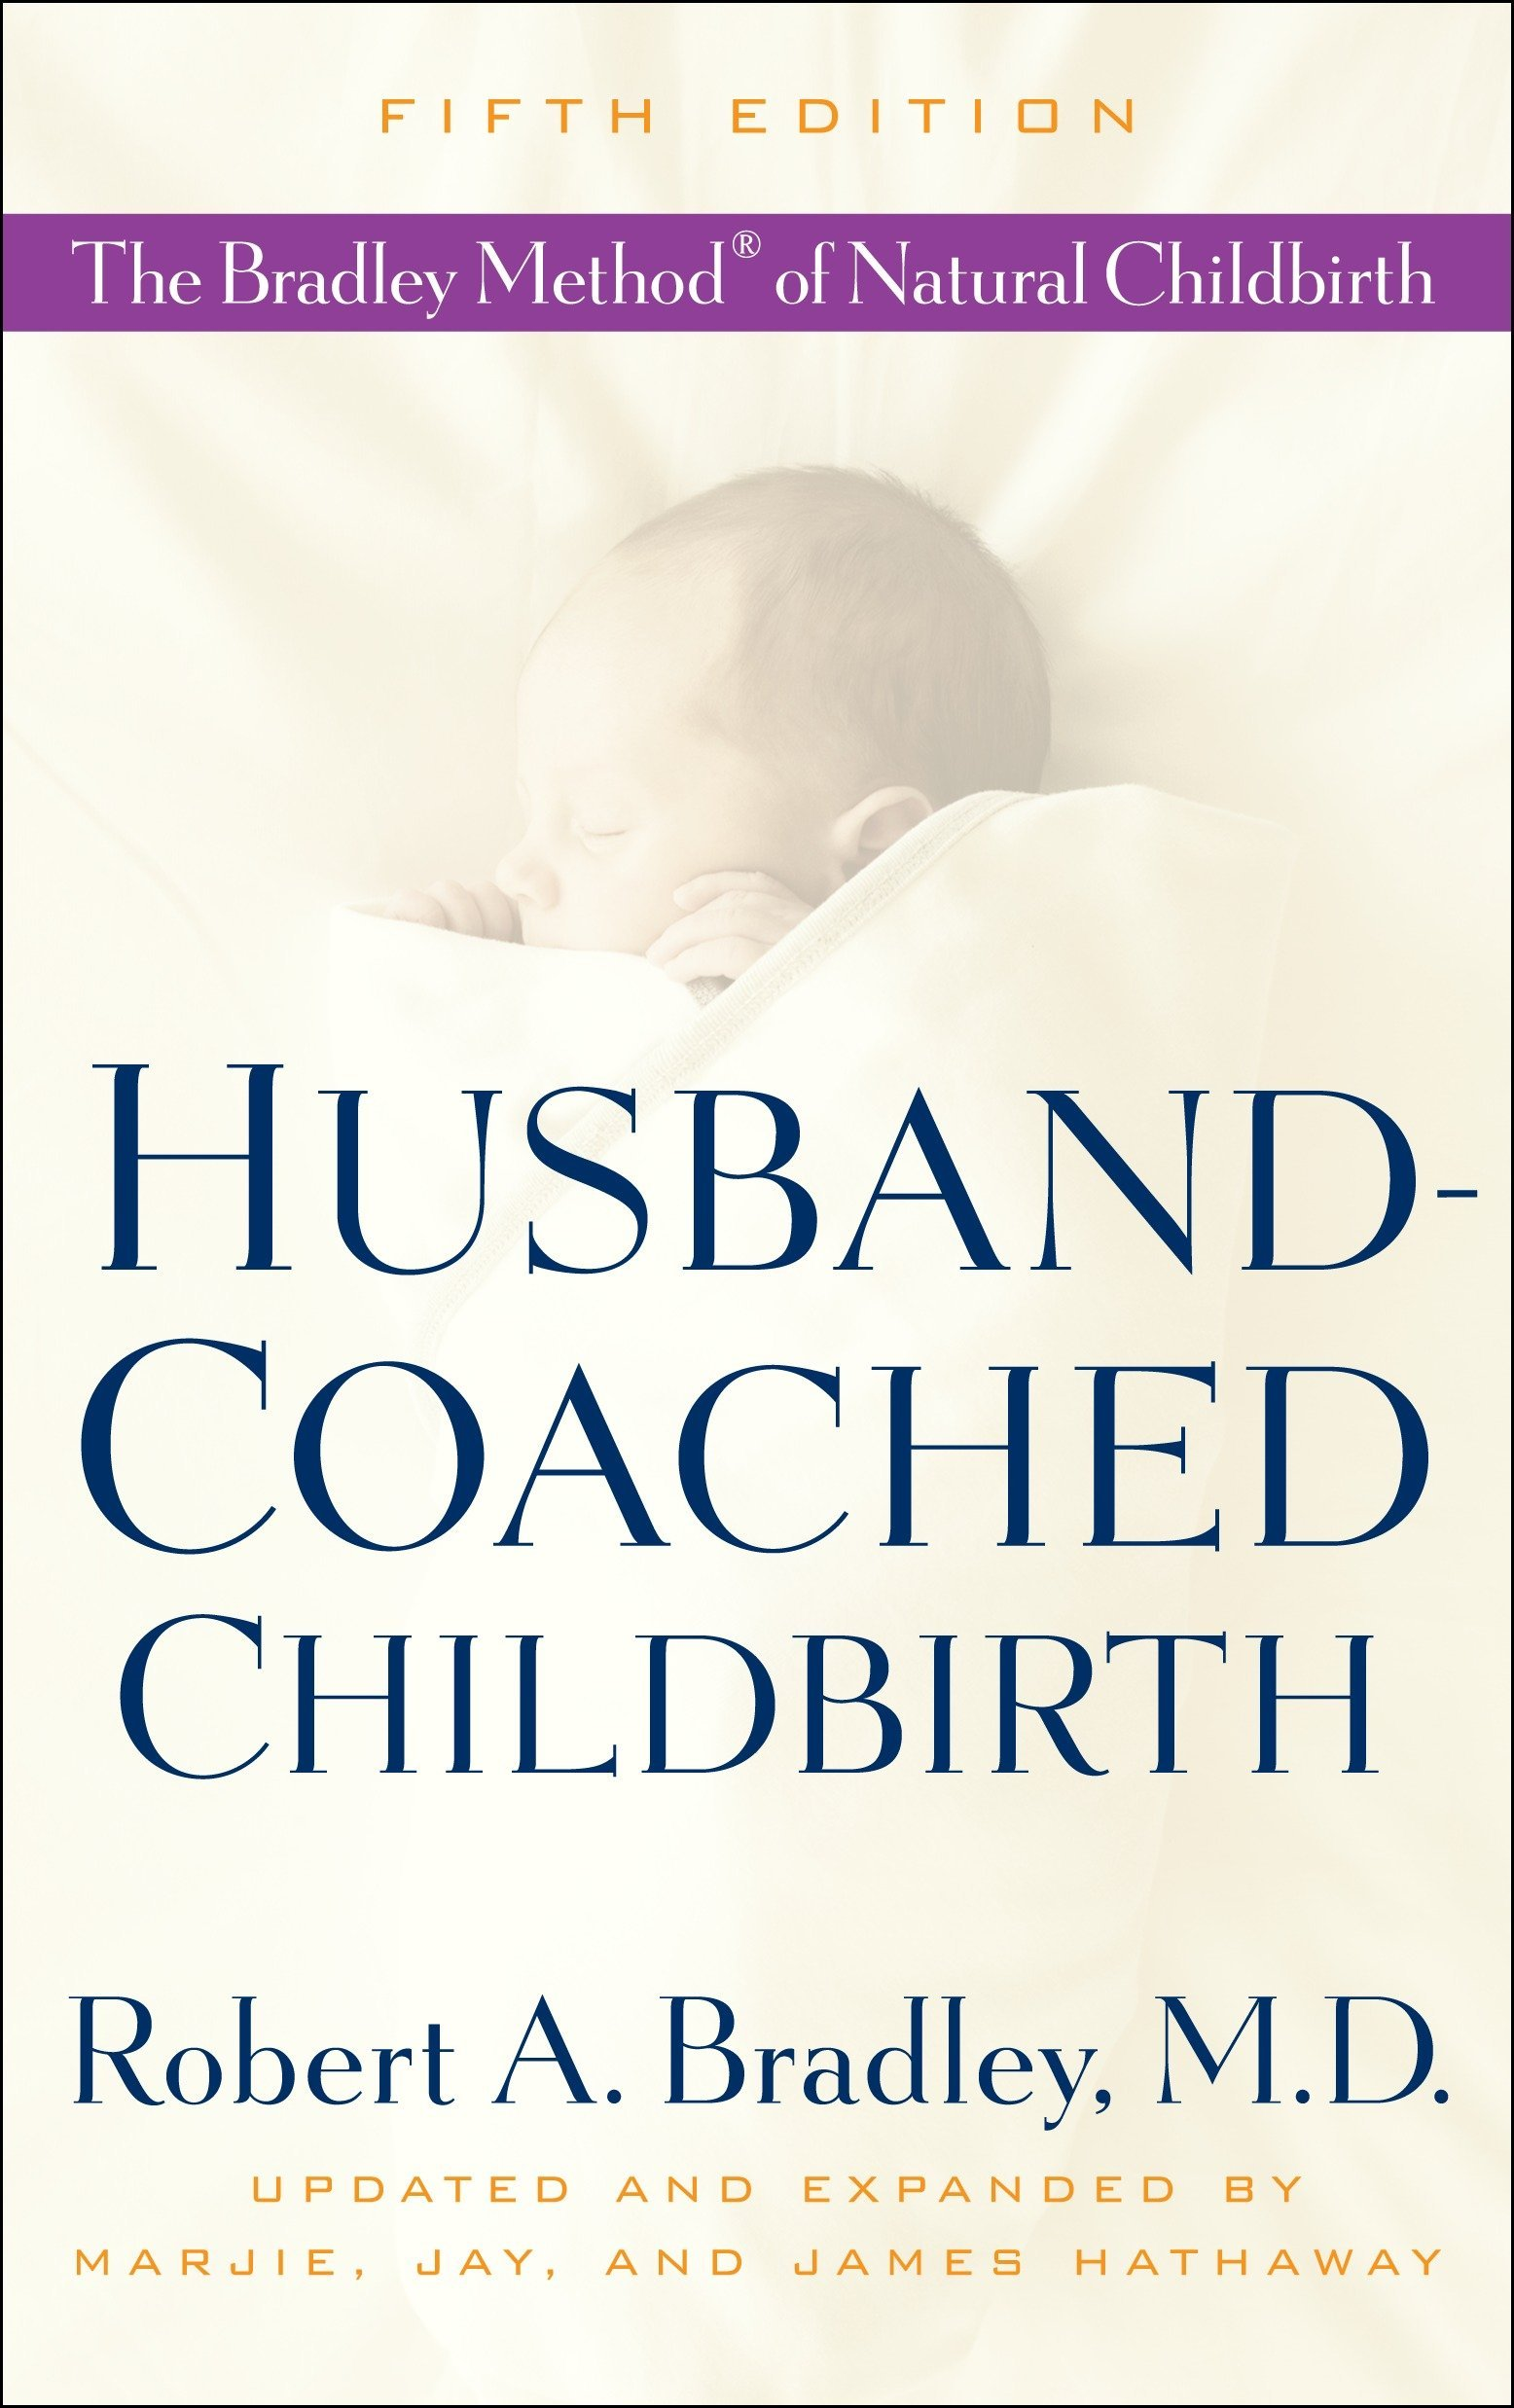 Image OfHusband-Coached Childbirth (Fifth Edition): The Bradley Method Of Natural Childbirth